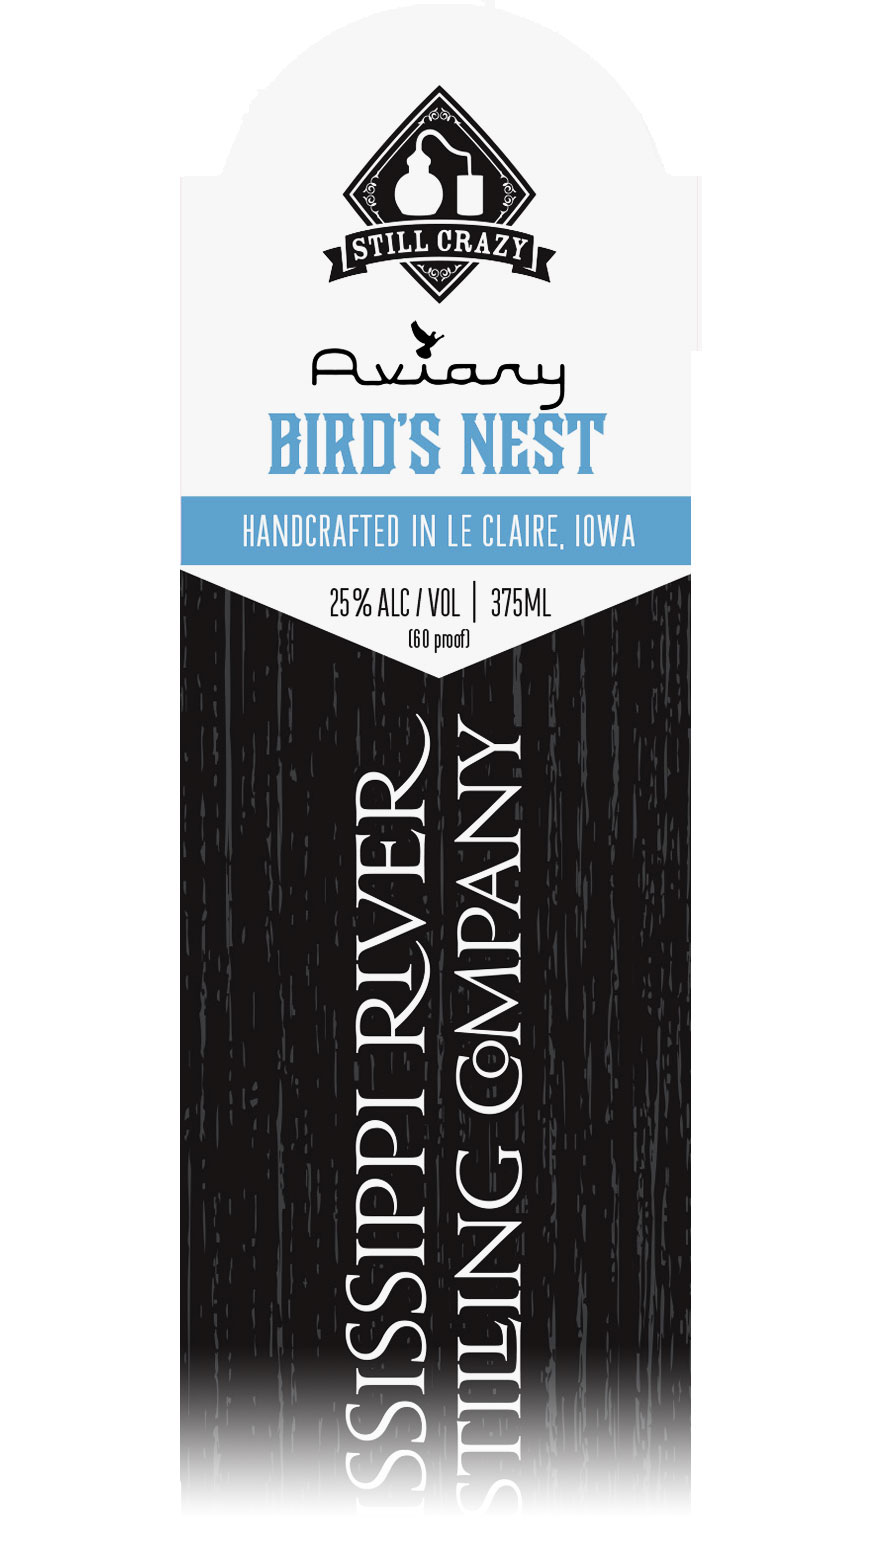 Aviary Limited Edition Barreled Cocktails label